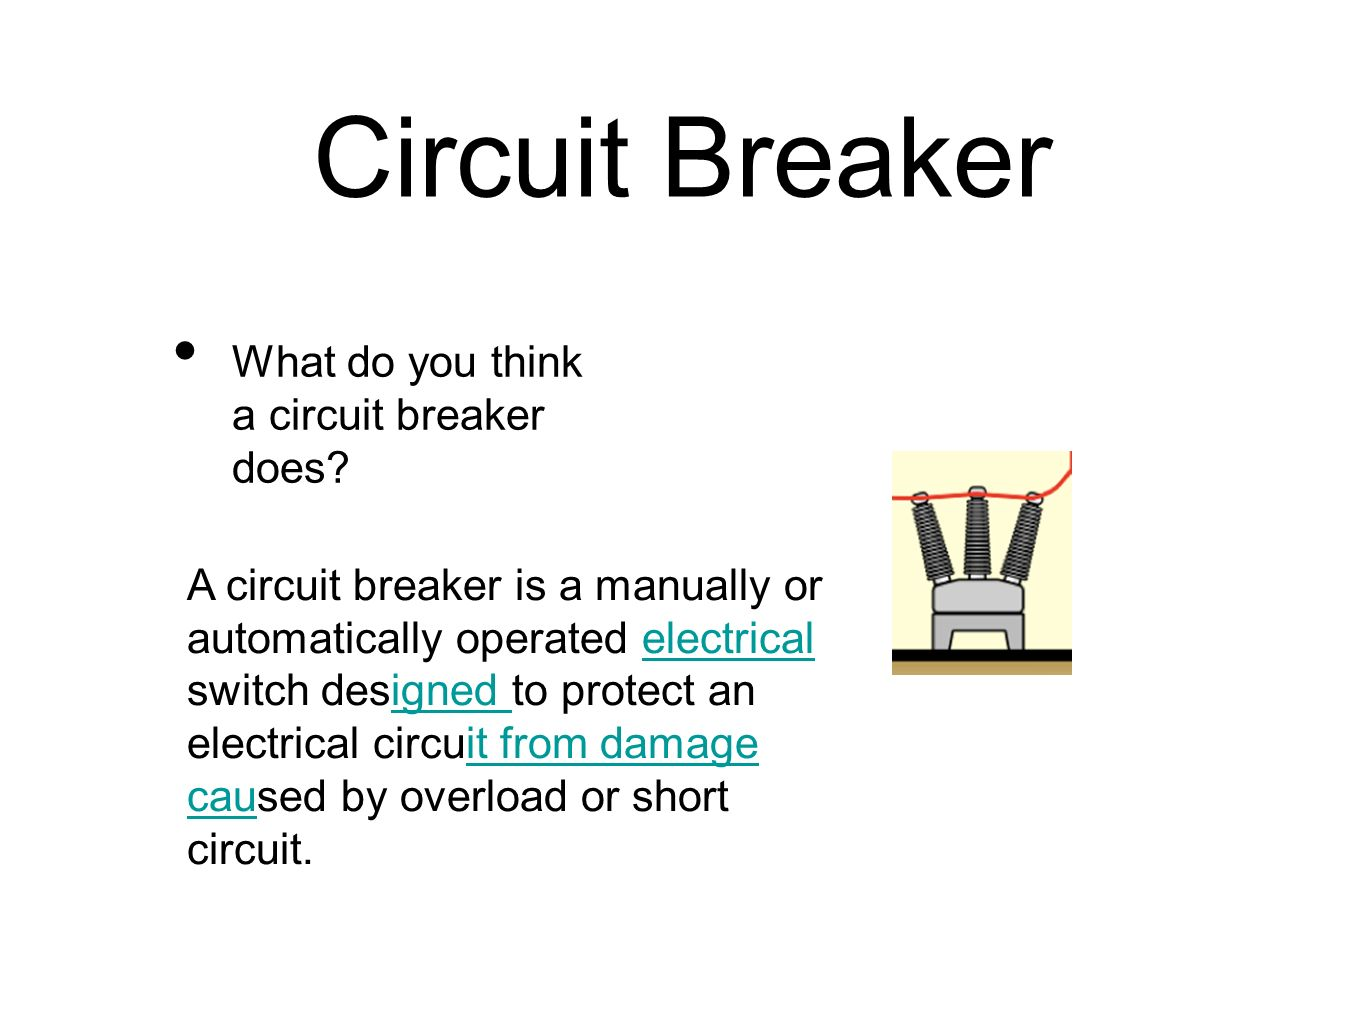 Circuit Breaker What do you think a circuit breaker does